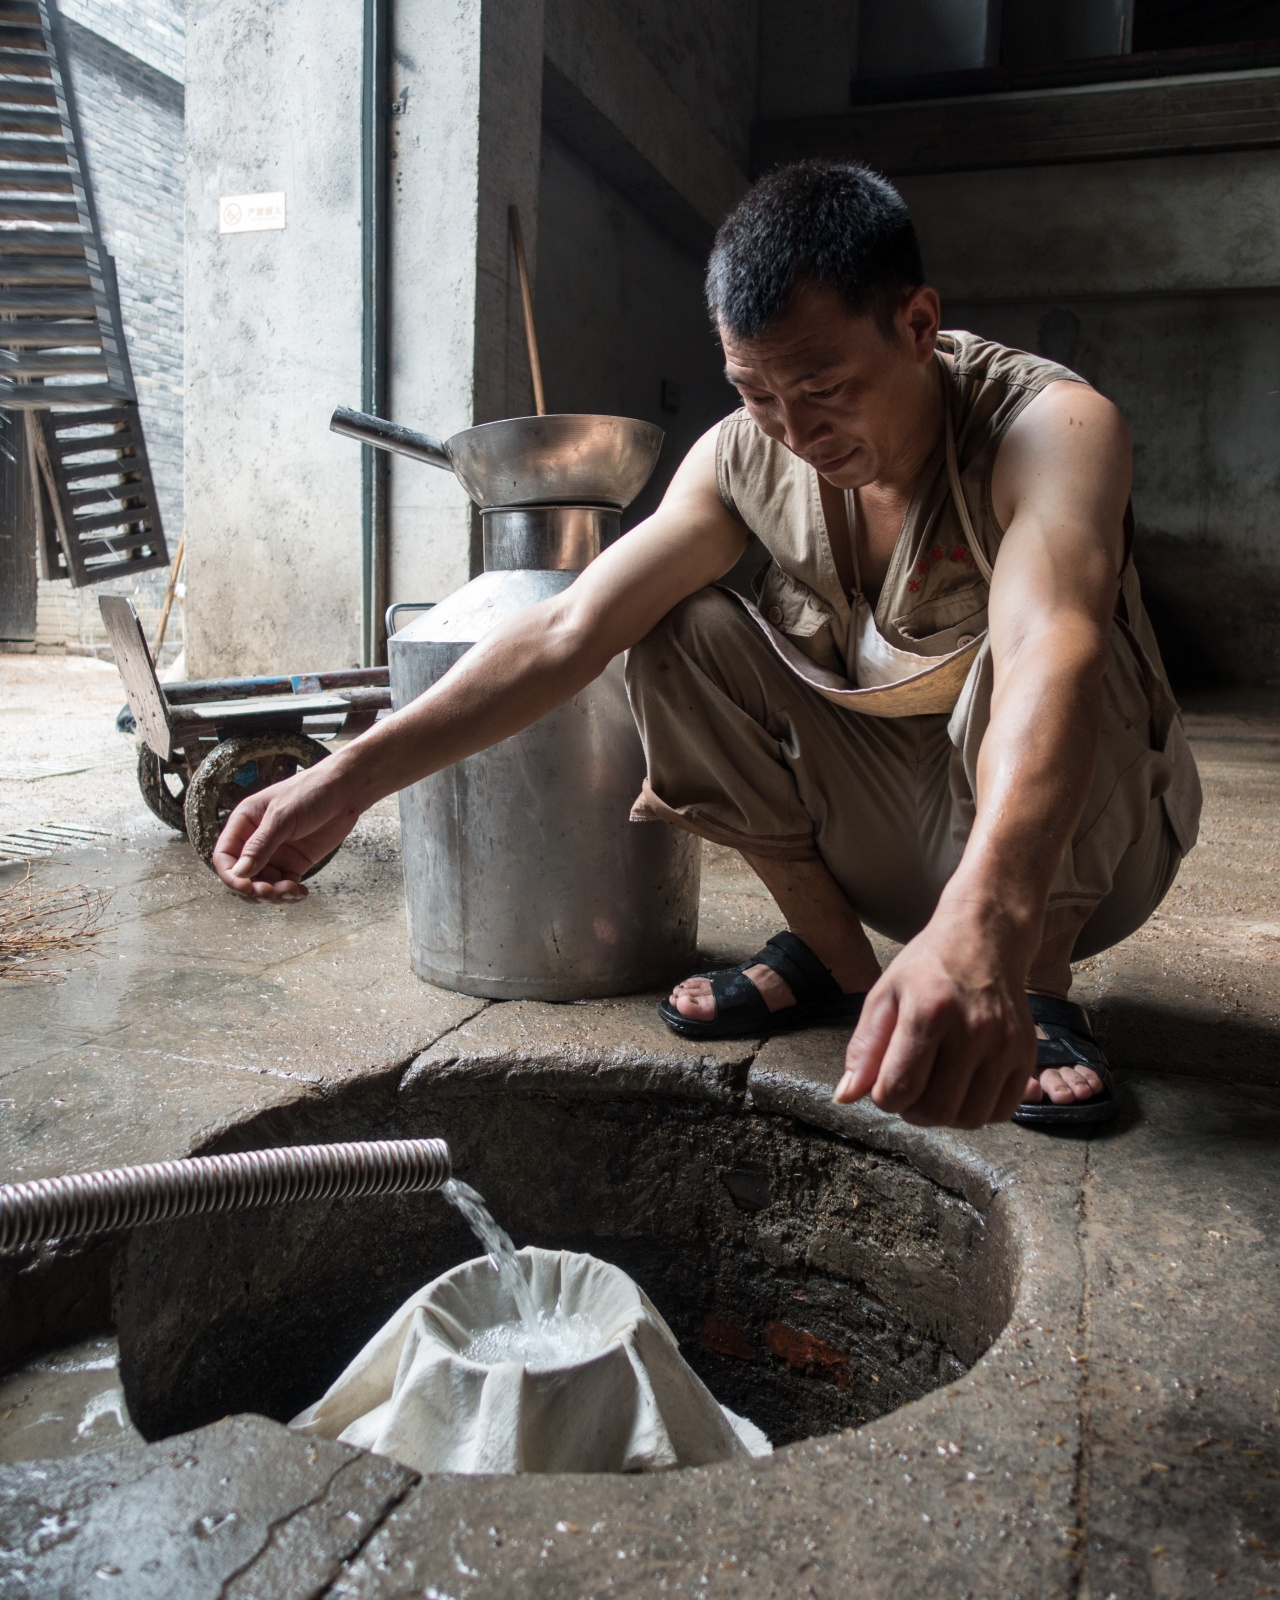 Raw distilled spirits are collected at the Shui Jing Fang Museum.